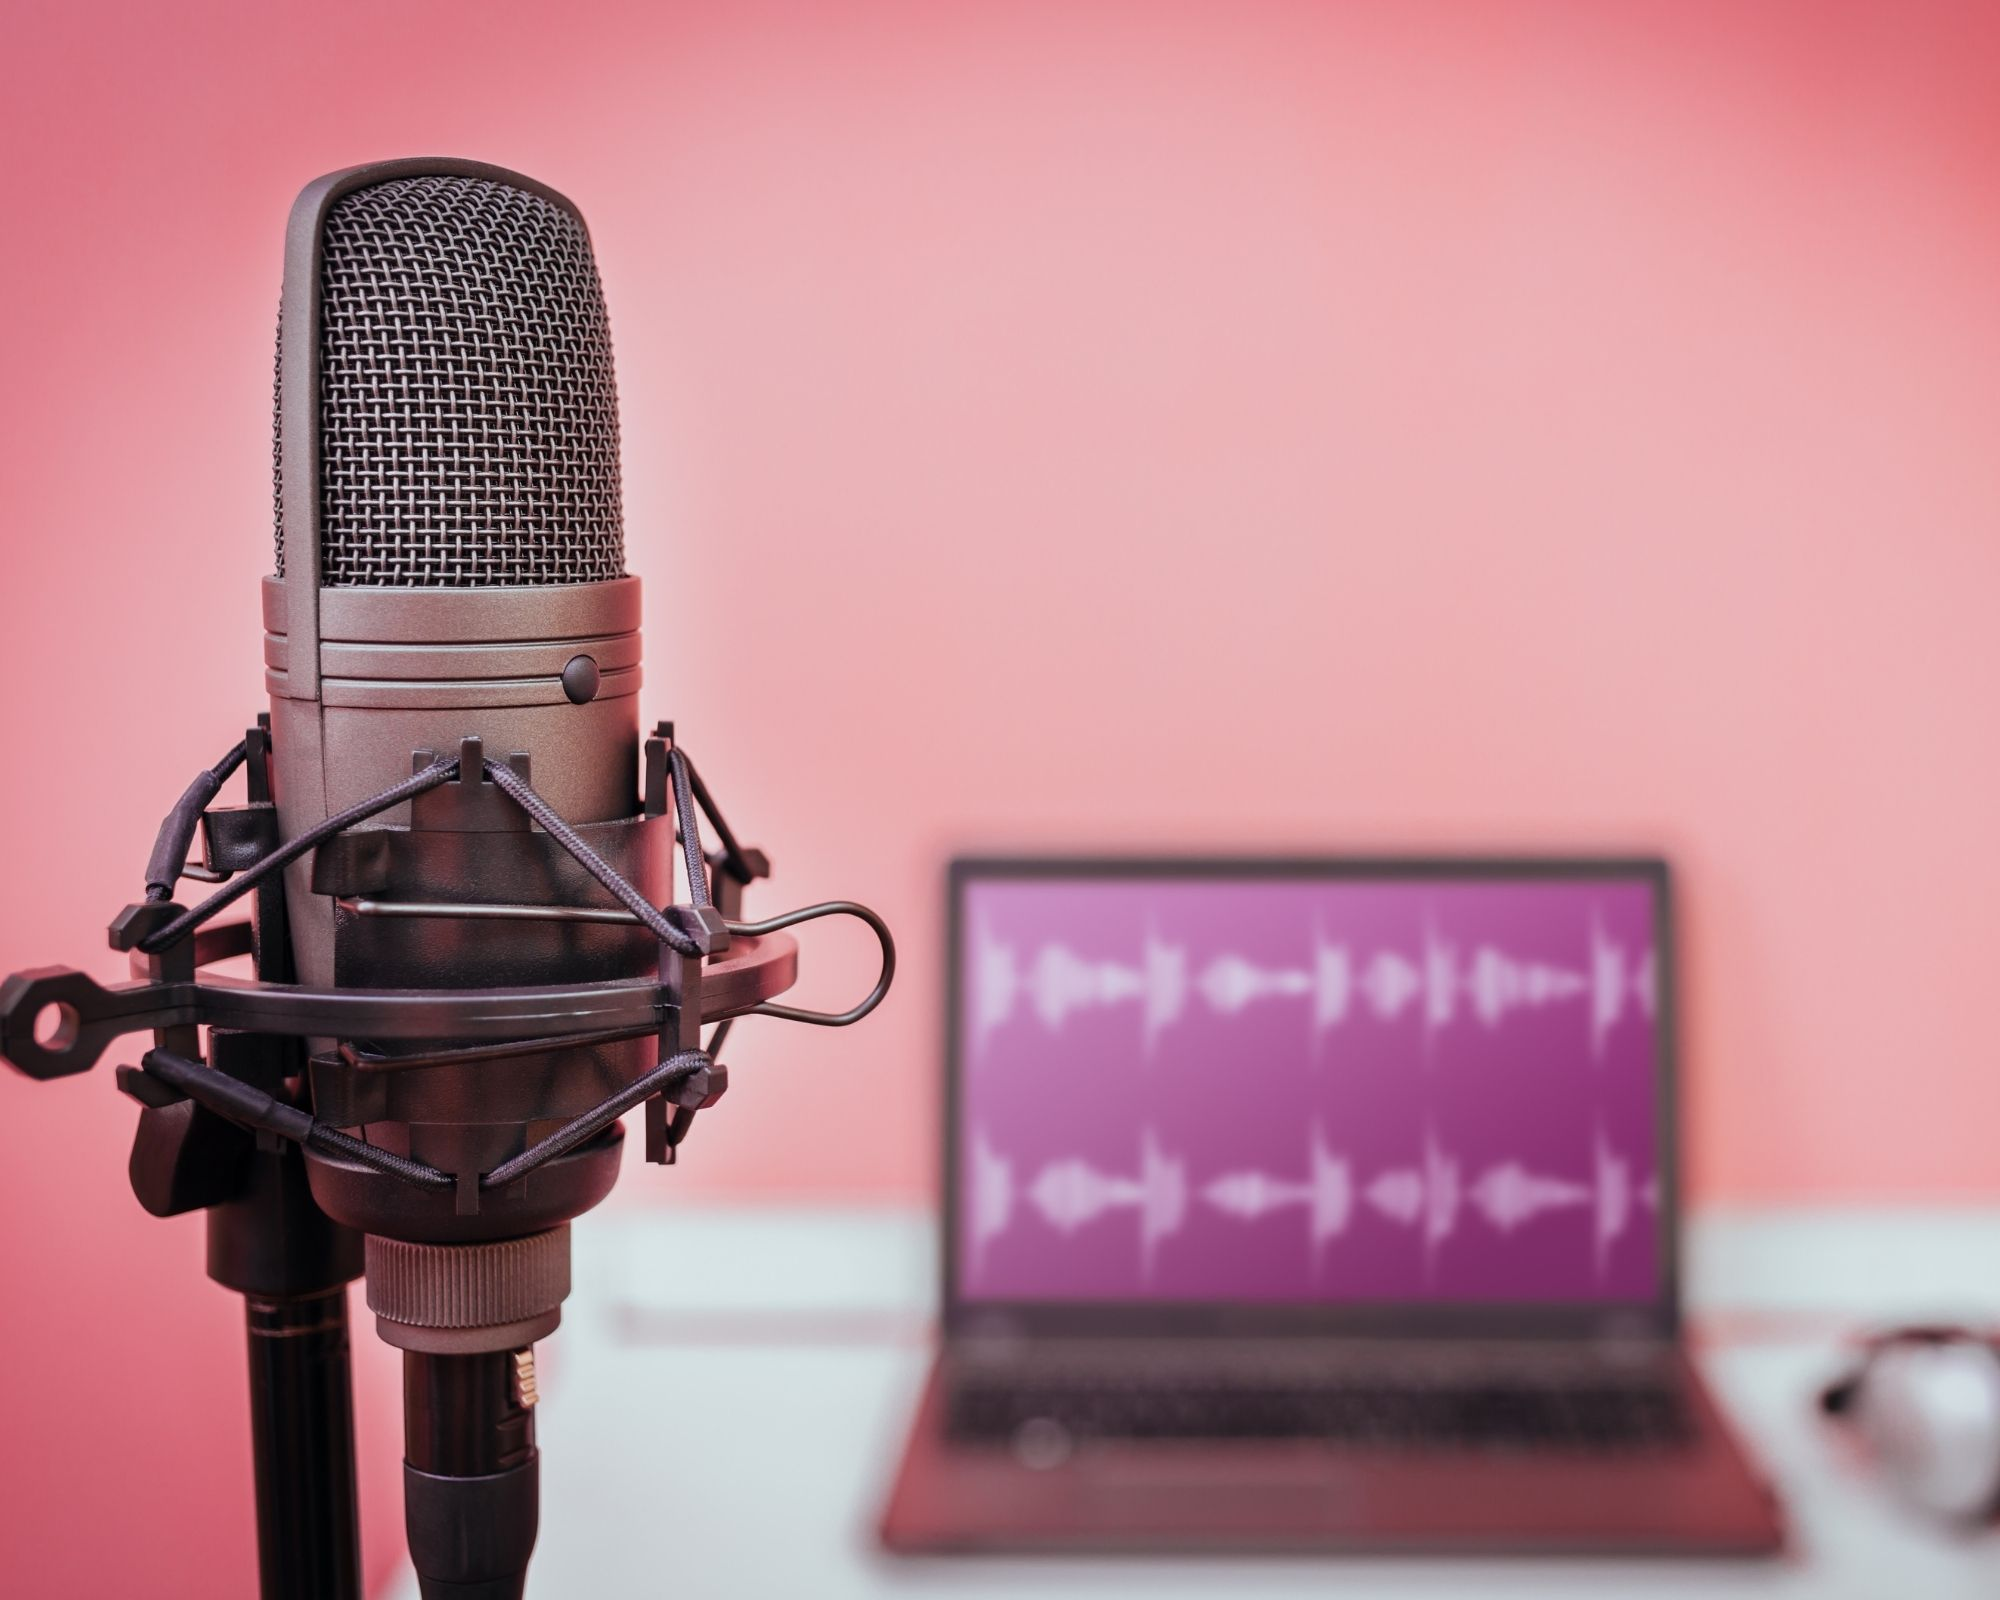 Adding a podcast to your marketing could help you grow your business